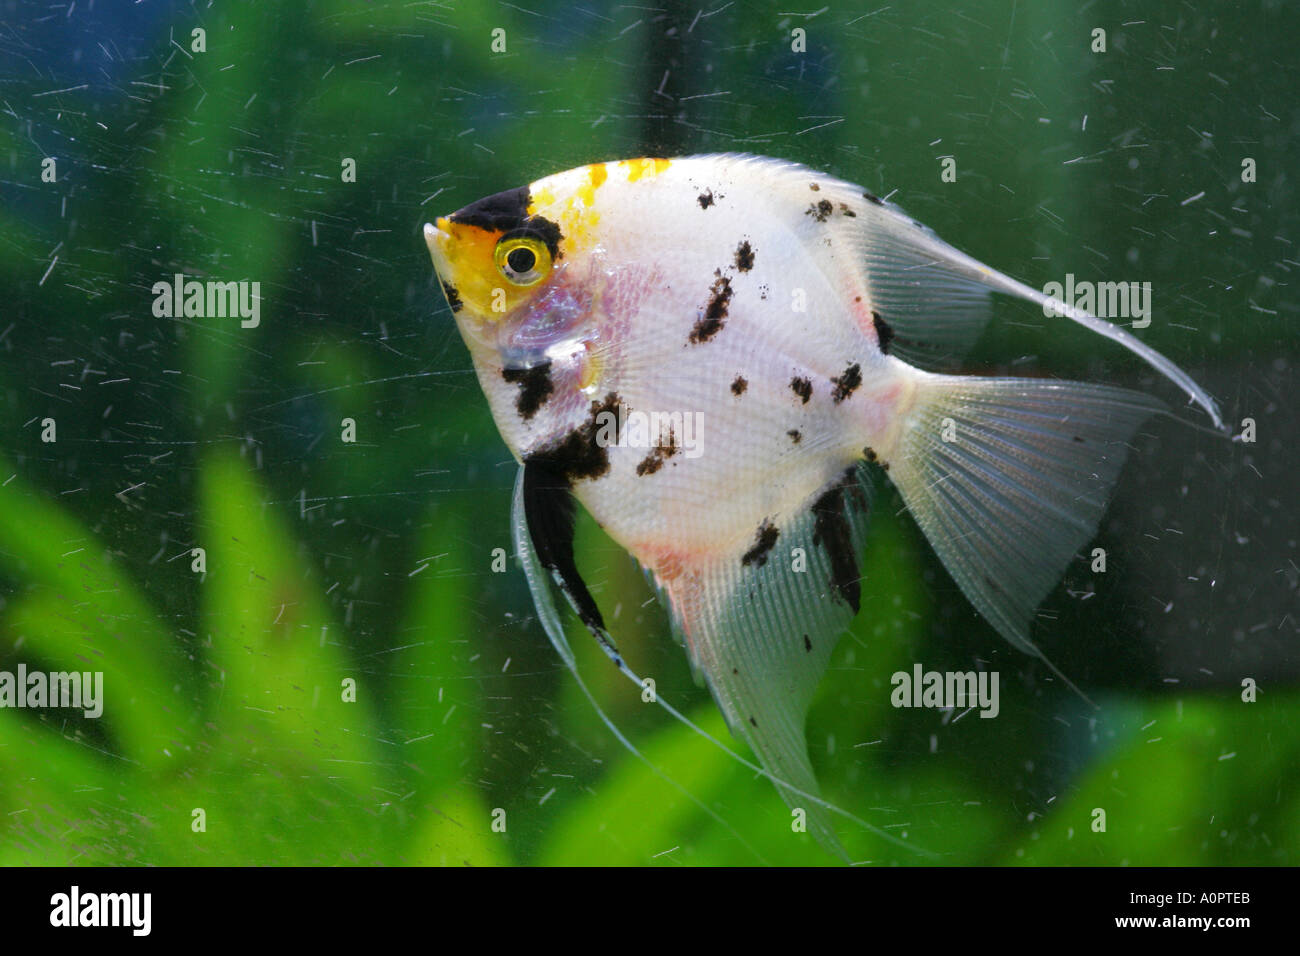 Black and yellow freshwater aquarium fish - Brightly Coloured Black And Yellow And White Tropical Angel Fish Swimming In A Glass Fish Tank